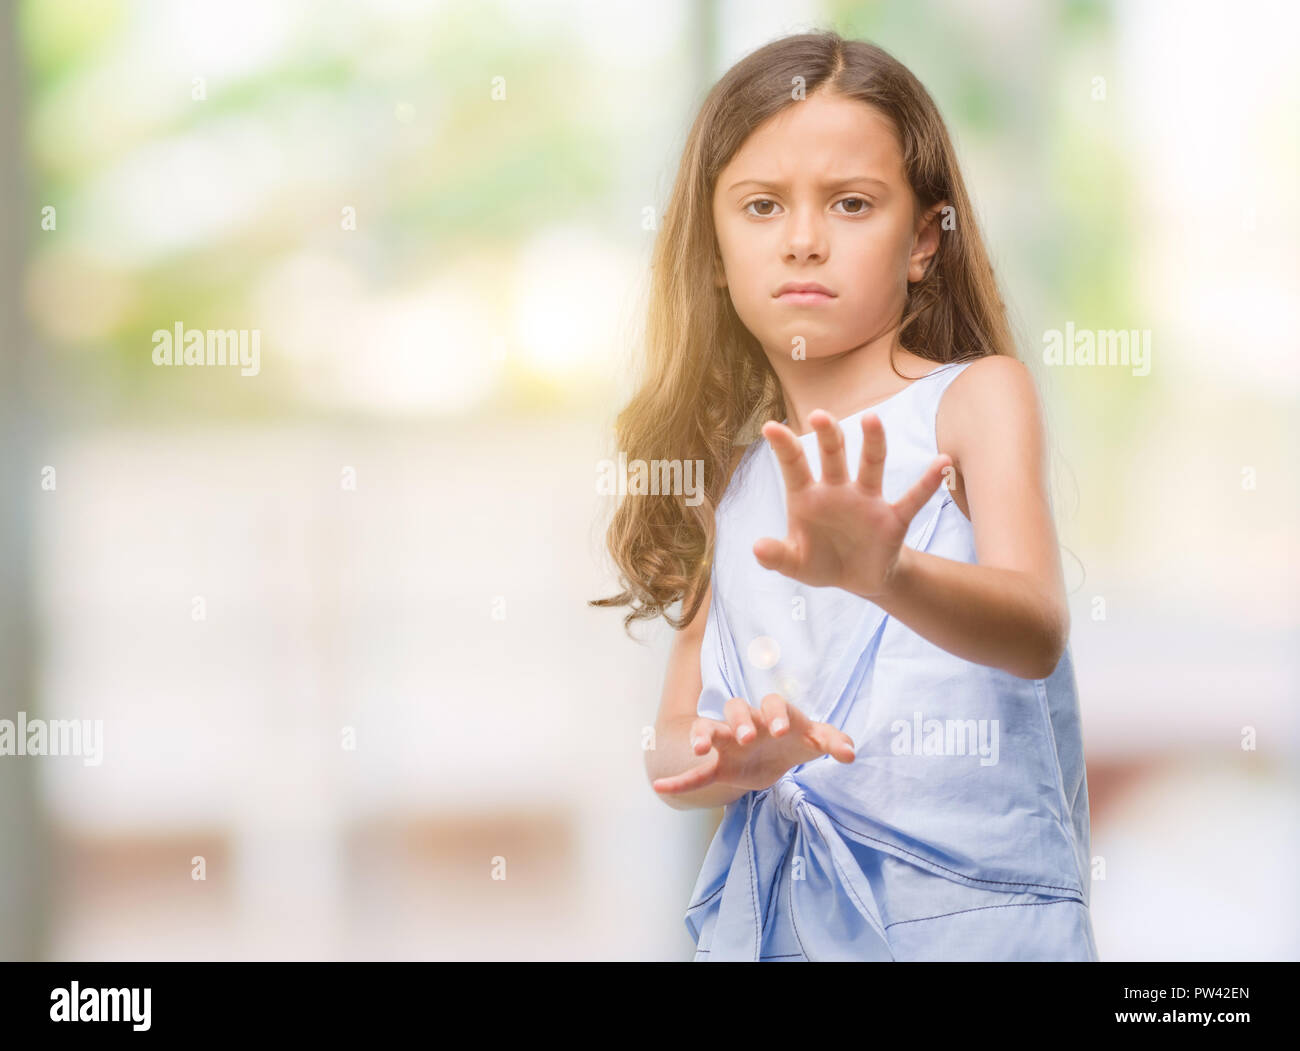 brunette hispanic girl disgusted expression displeased and fearful